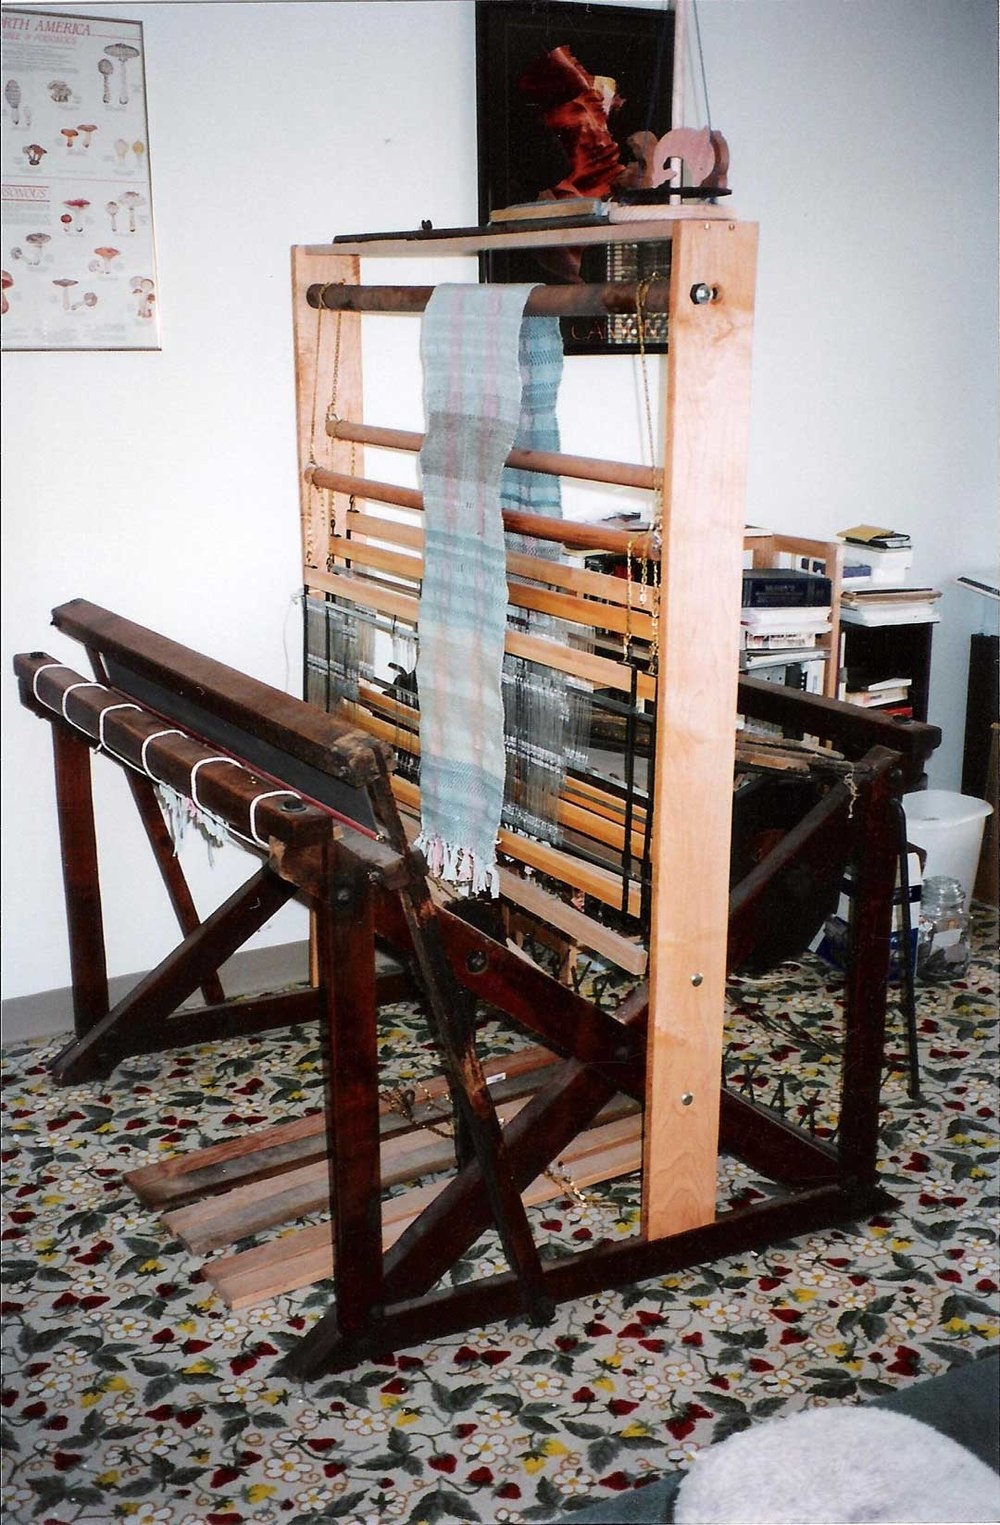 Rebecca Mezoff's first loom. (Isn't that carpet astounding?)